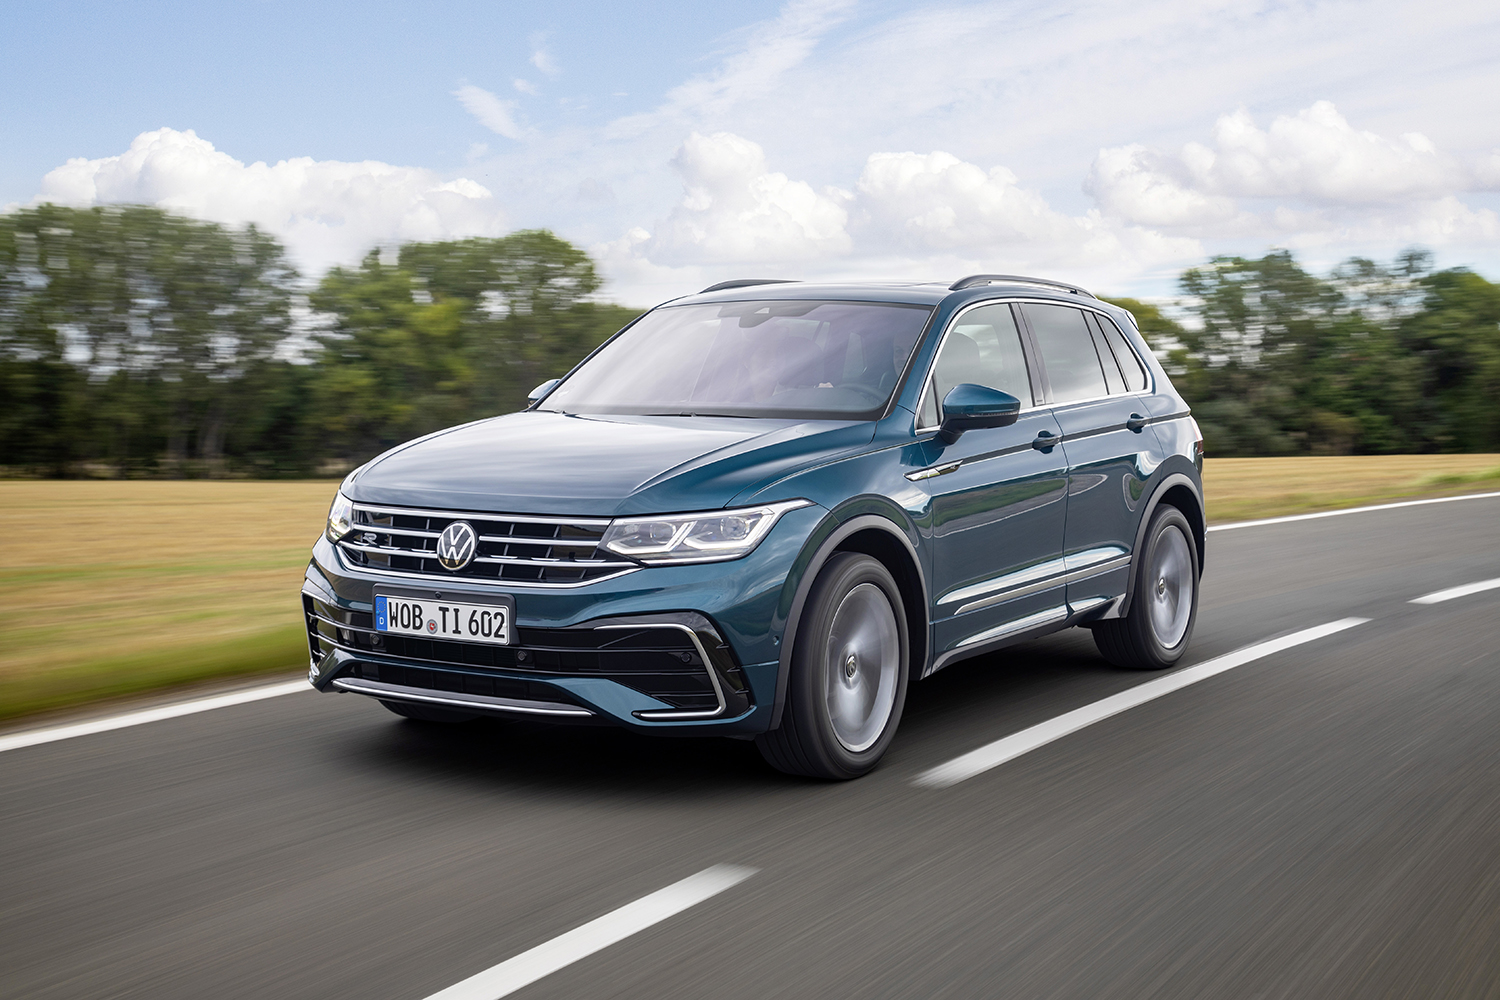 New Tiguan goes on sale in Ireland